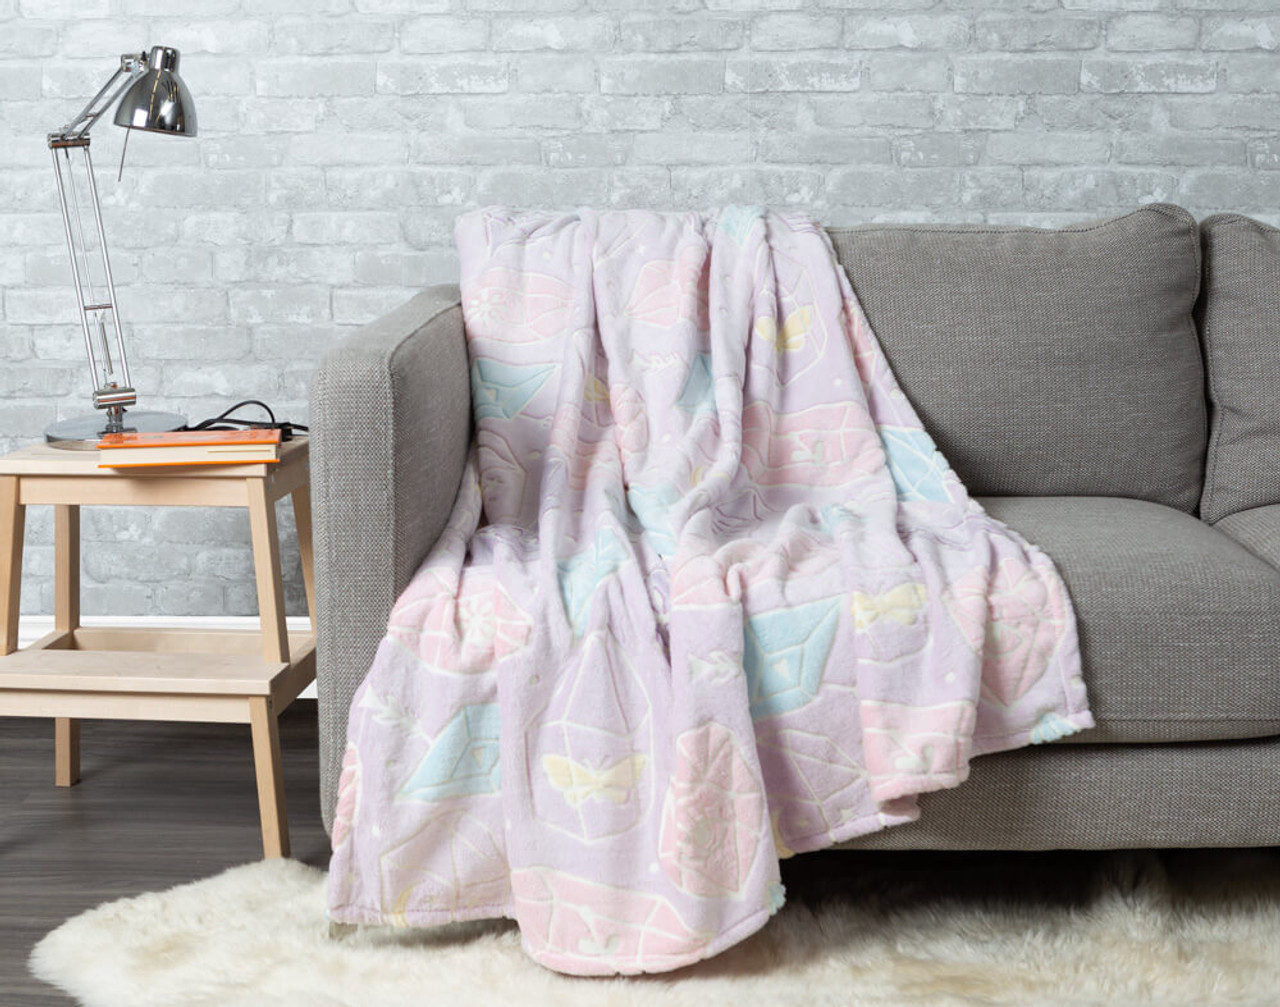 Crystal Glow in the Dark Throw pictured draped over a couch.